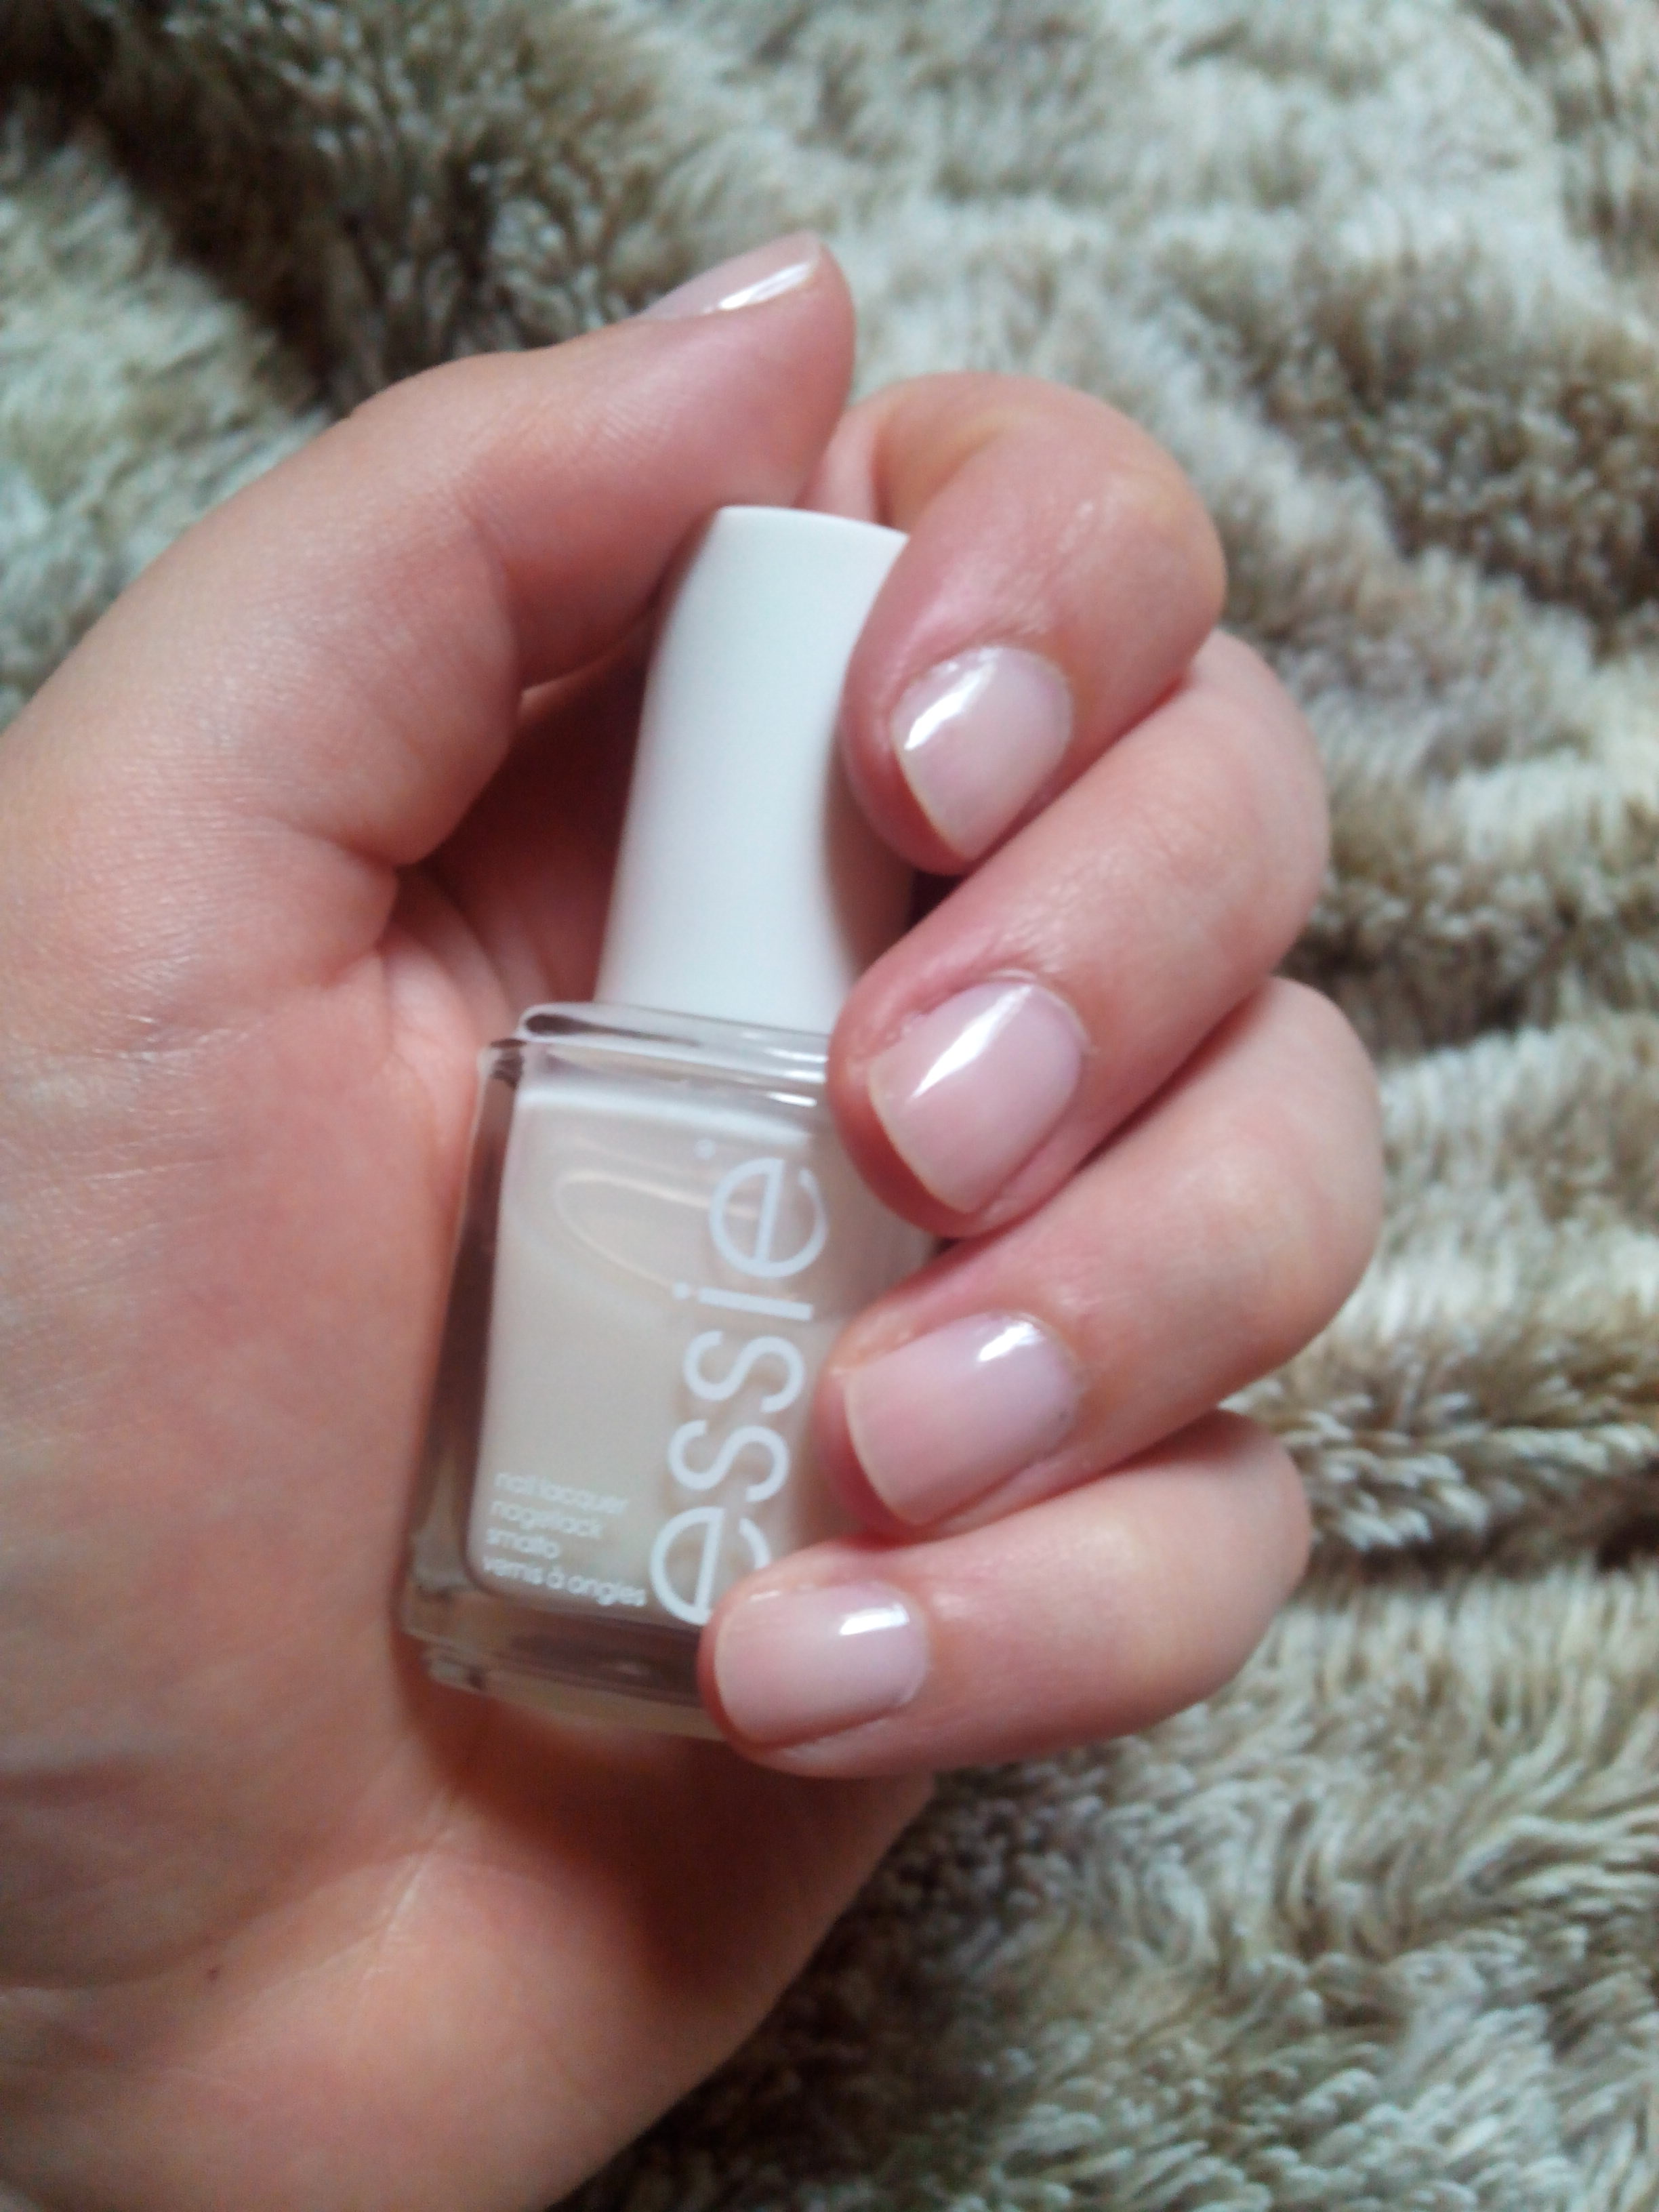 Super Vernis nudes, résultat des tests - Mon blog de filleMon blog de fille JK12